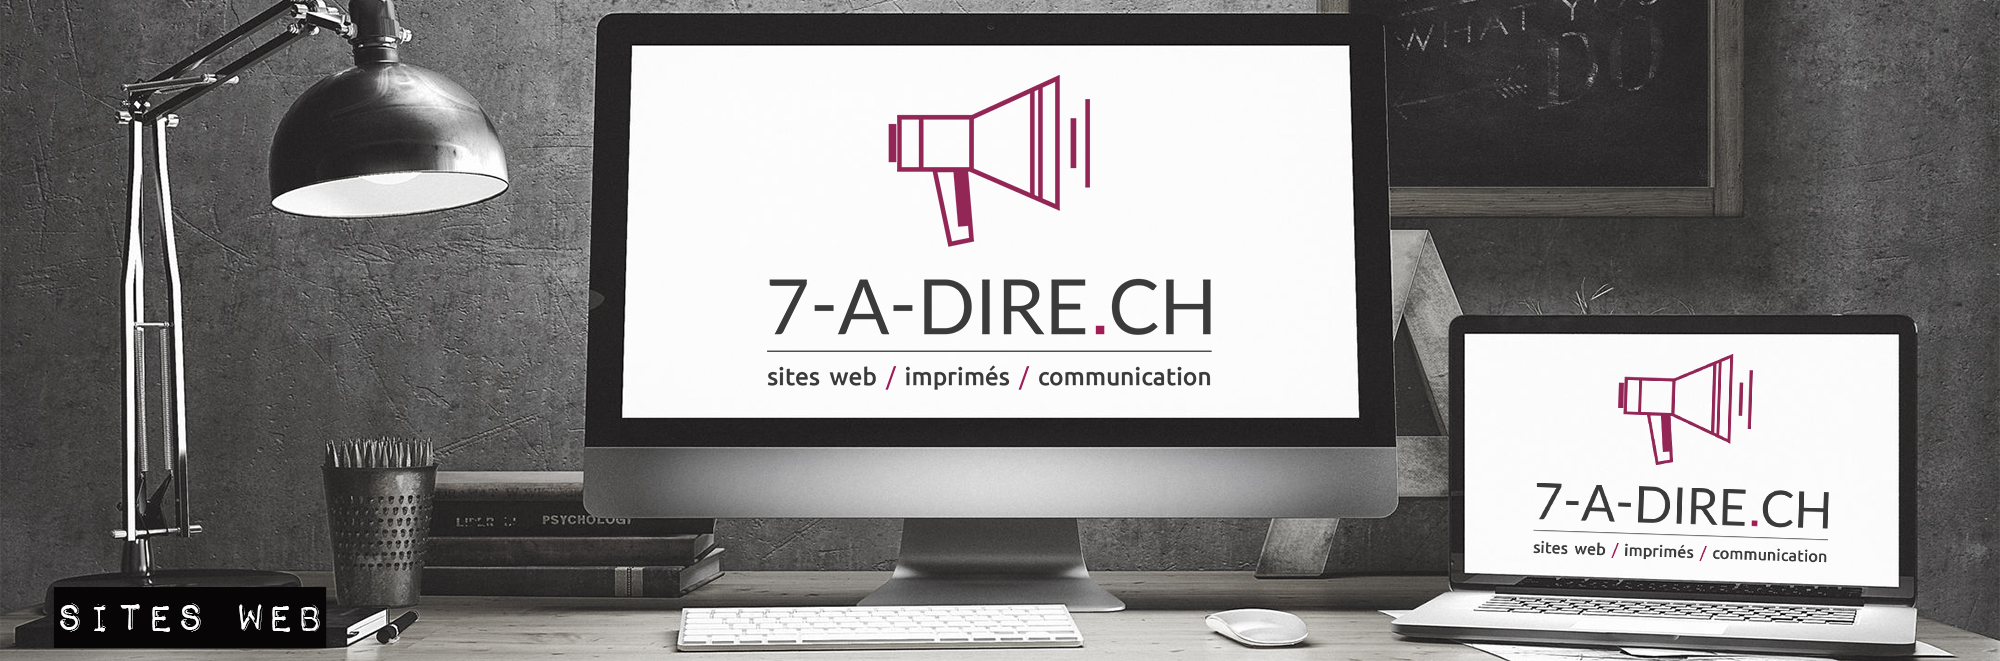 7-A-DIRE.CH -  réalisation de sites web